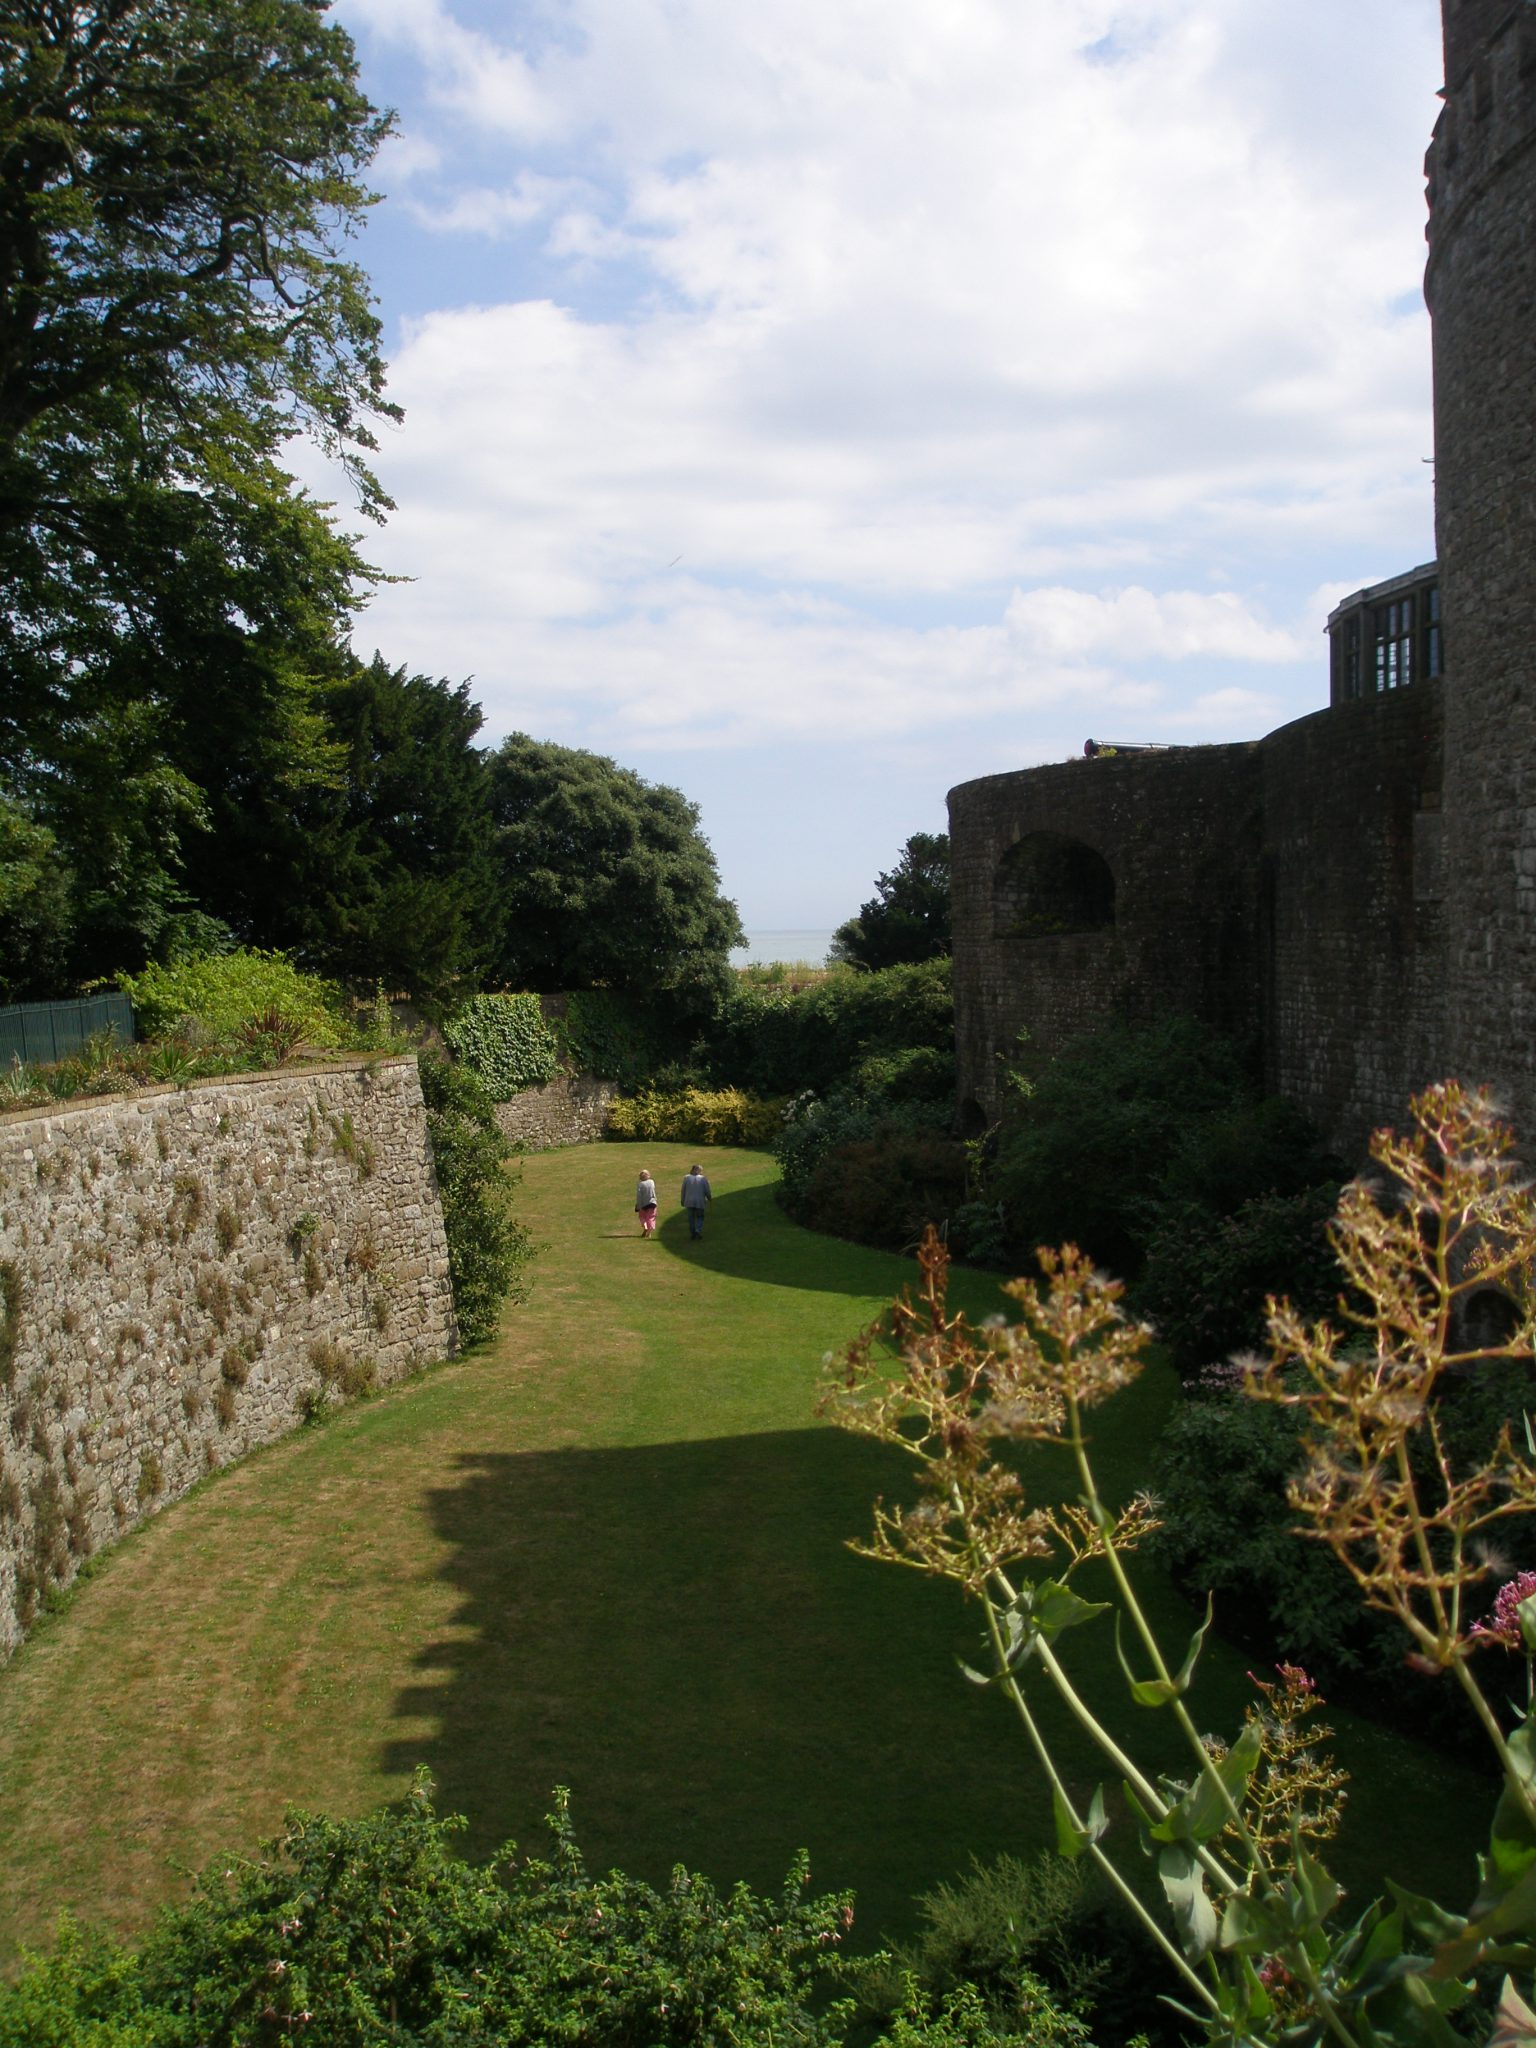 This was our view from the Entry Bridge, down into the Moat, which has been transformed into a Garden.